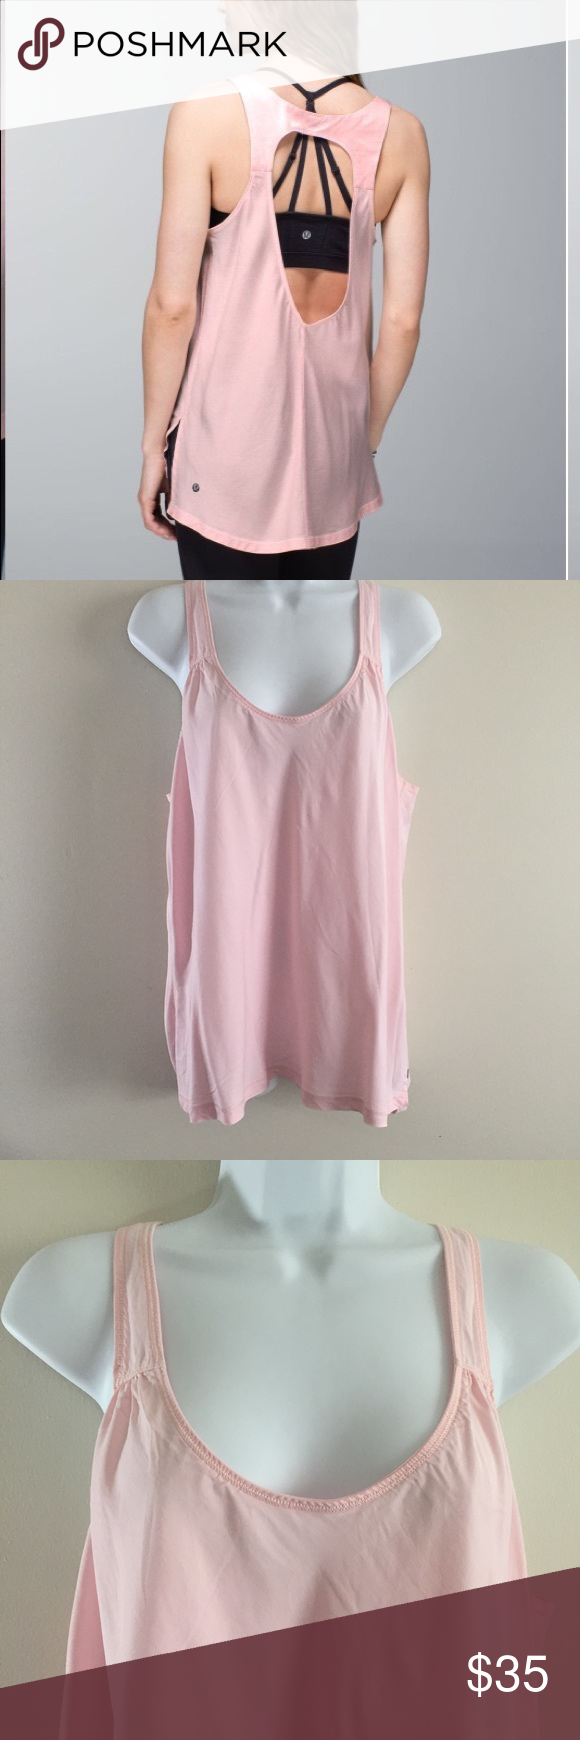 eb8e9a56c6cad2 Lululemon Peace of Mind Open Back Tank Pale Pink Lululemon Peace of Mind  Open Back Tank. Pale pink color. Side slits. Made of sweat wicking tencel  silk ...